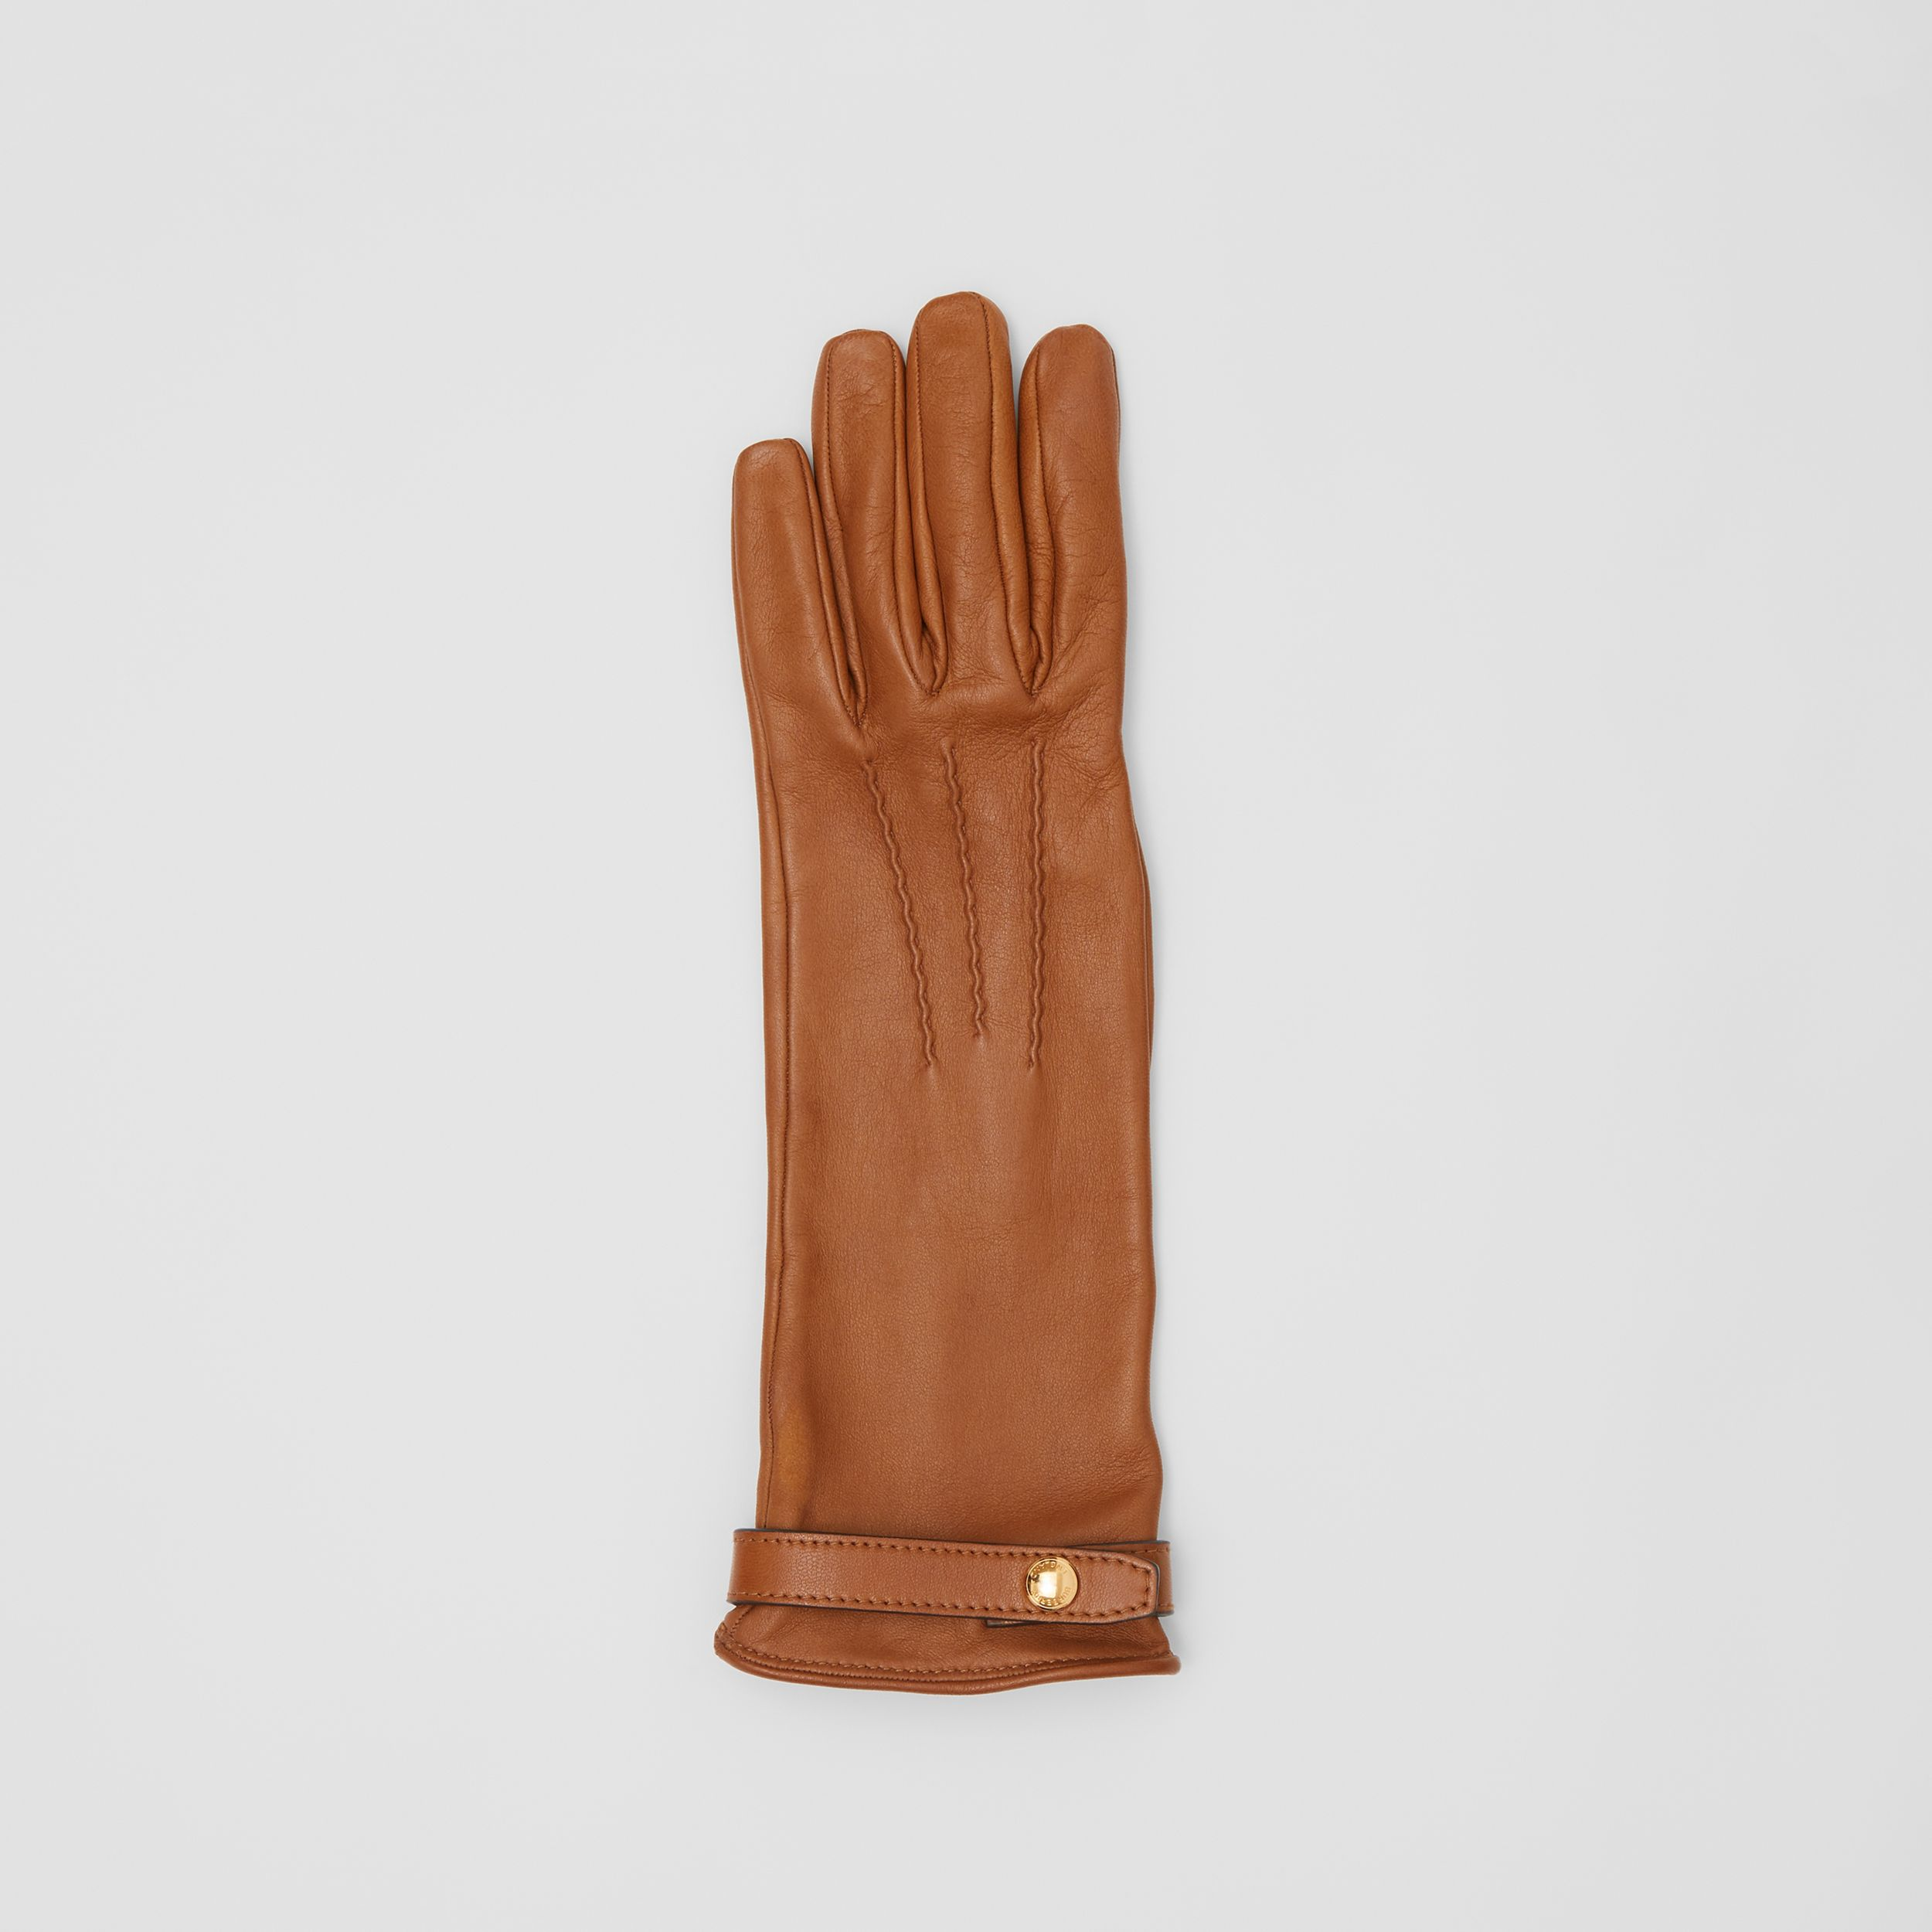 Silk-lined Lambskin Gloves in Brown | Burberry - 3